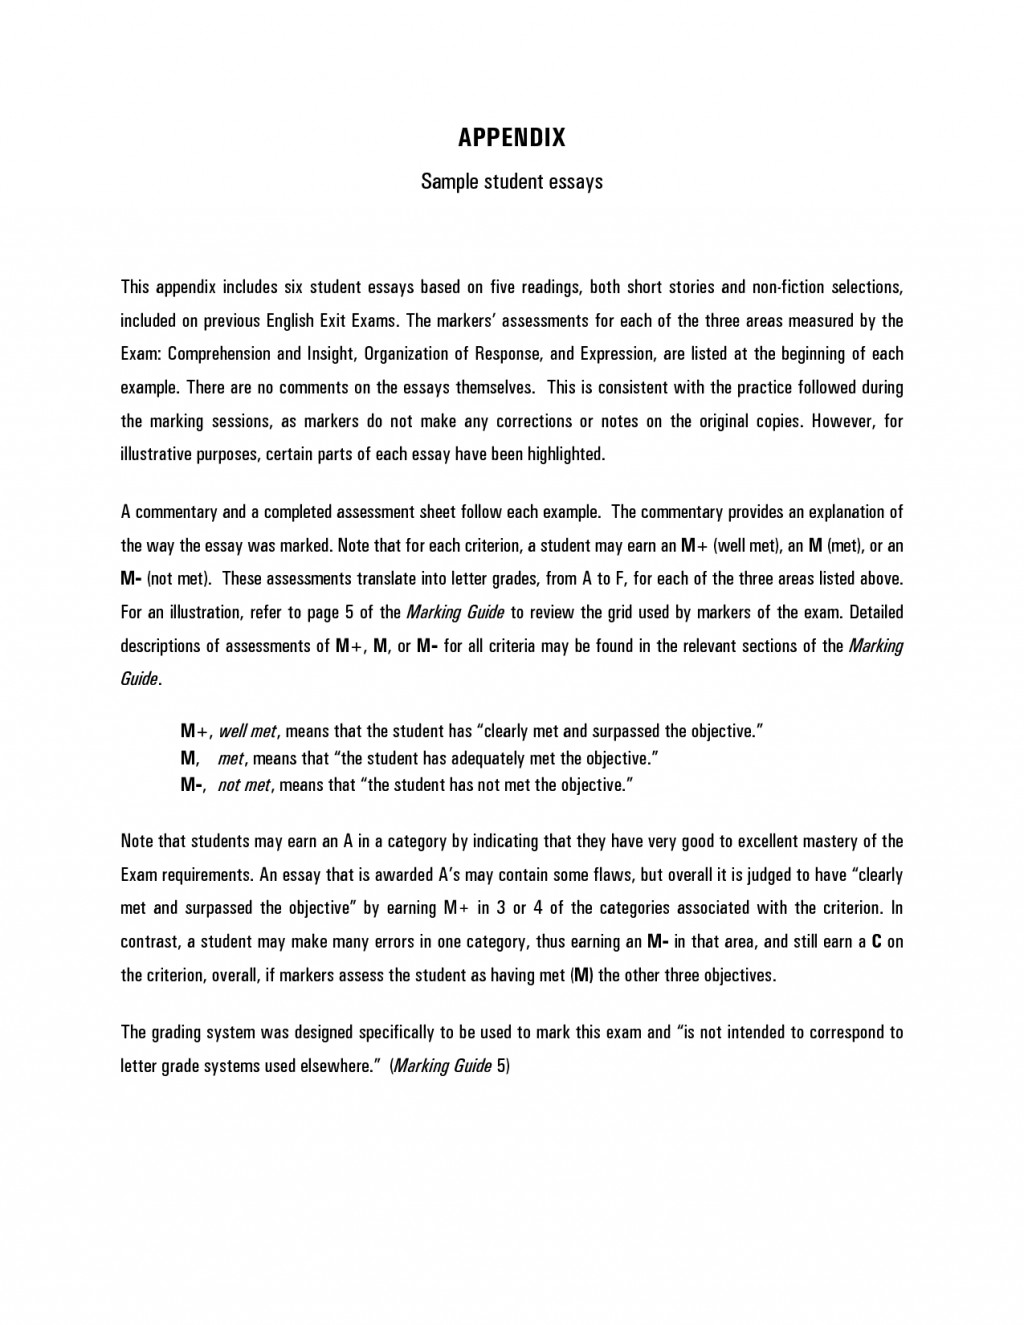 003 Argumentative Essay Examples For High School Exaples Reading Response Samples Definition Sample Tfjvt Highschool Students Admission Expository Pdf Striking Short Topics Large